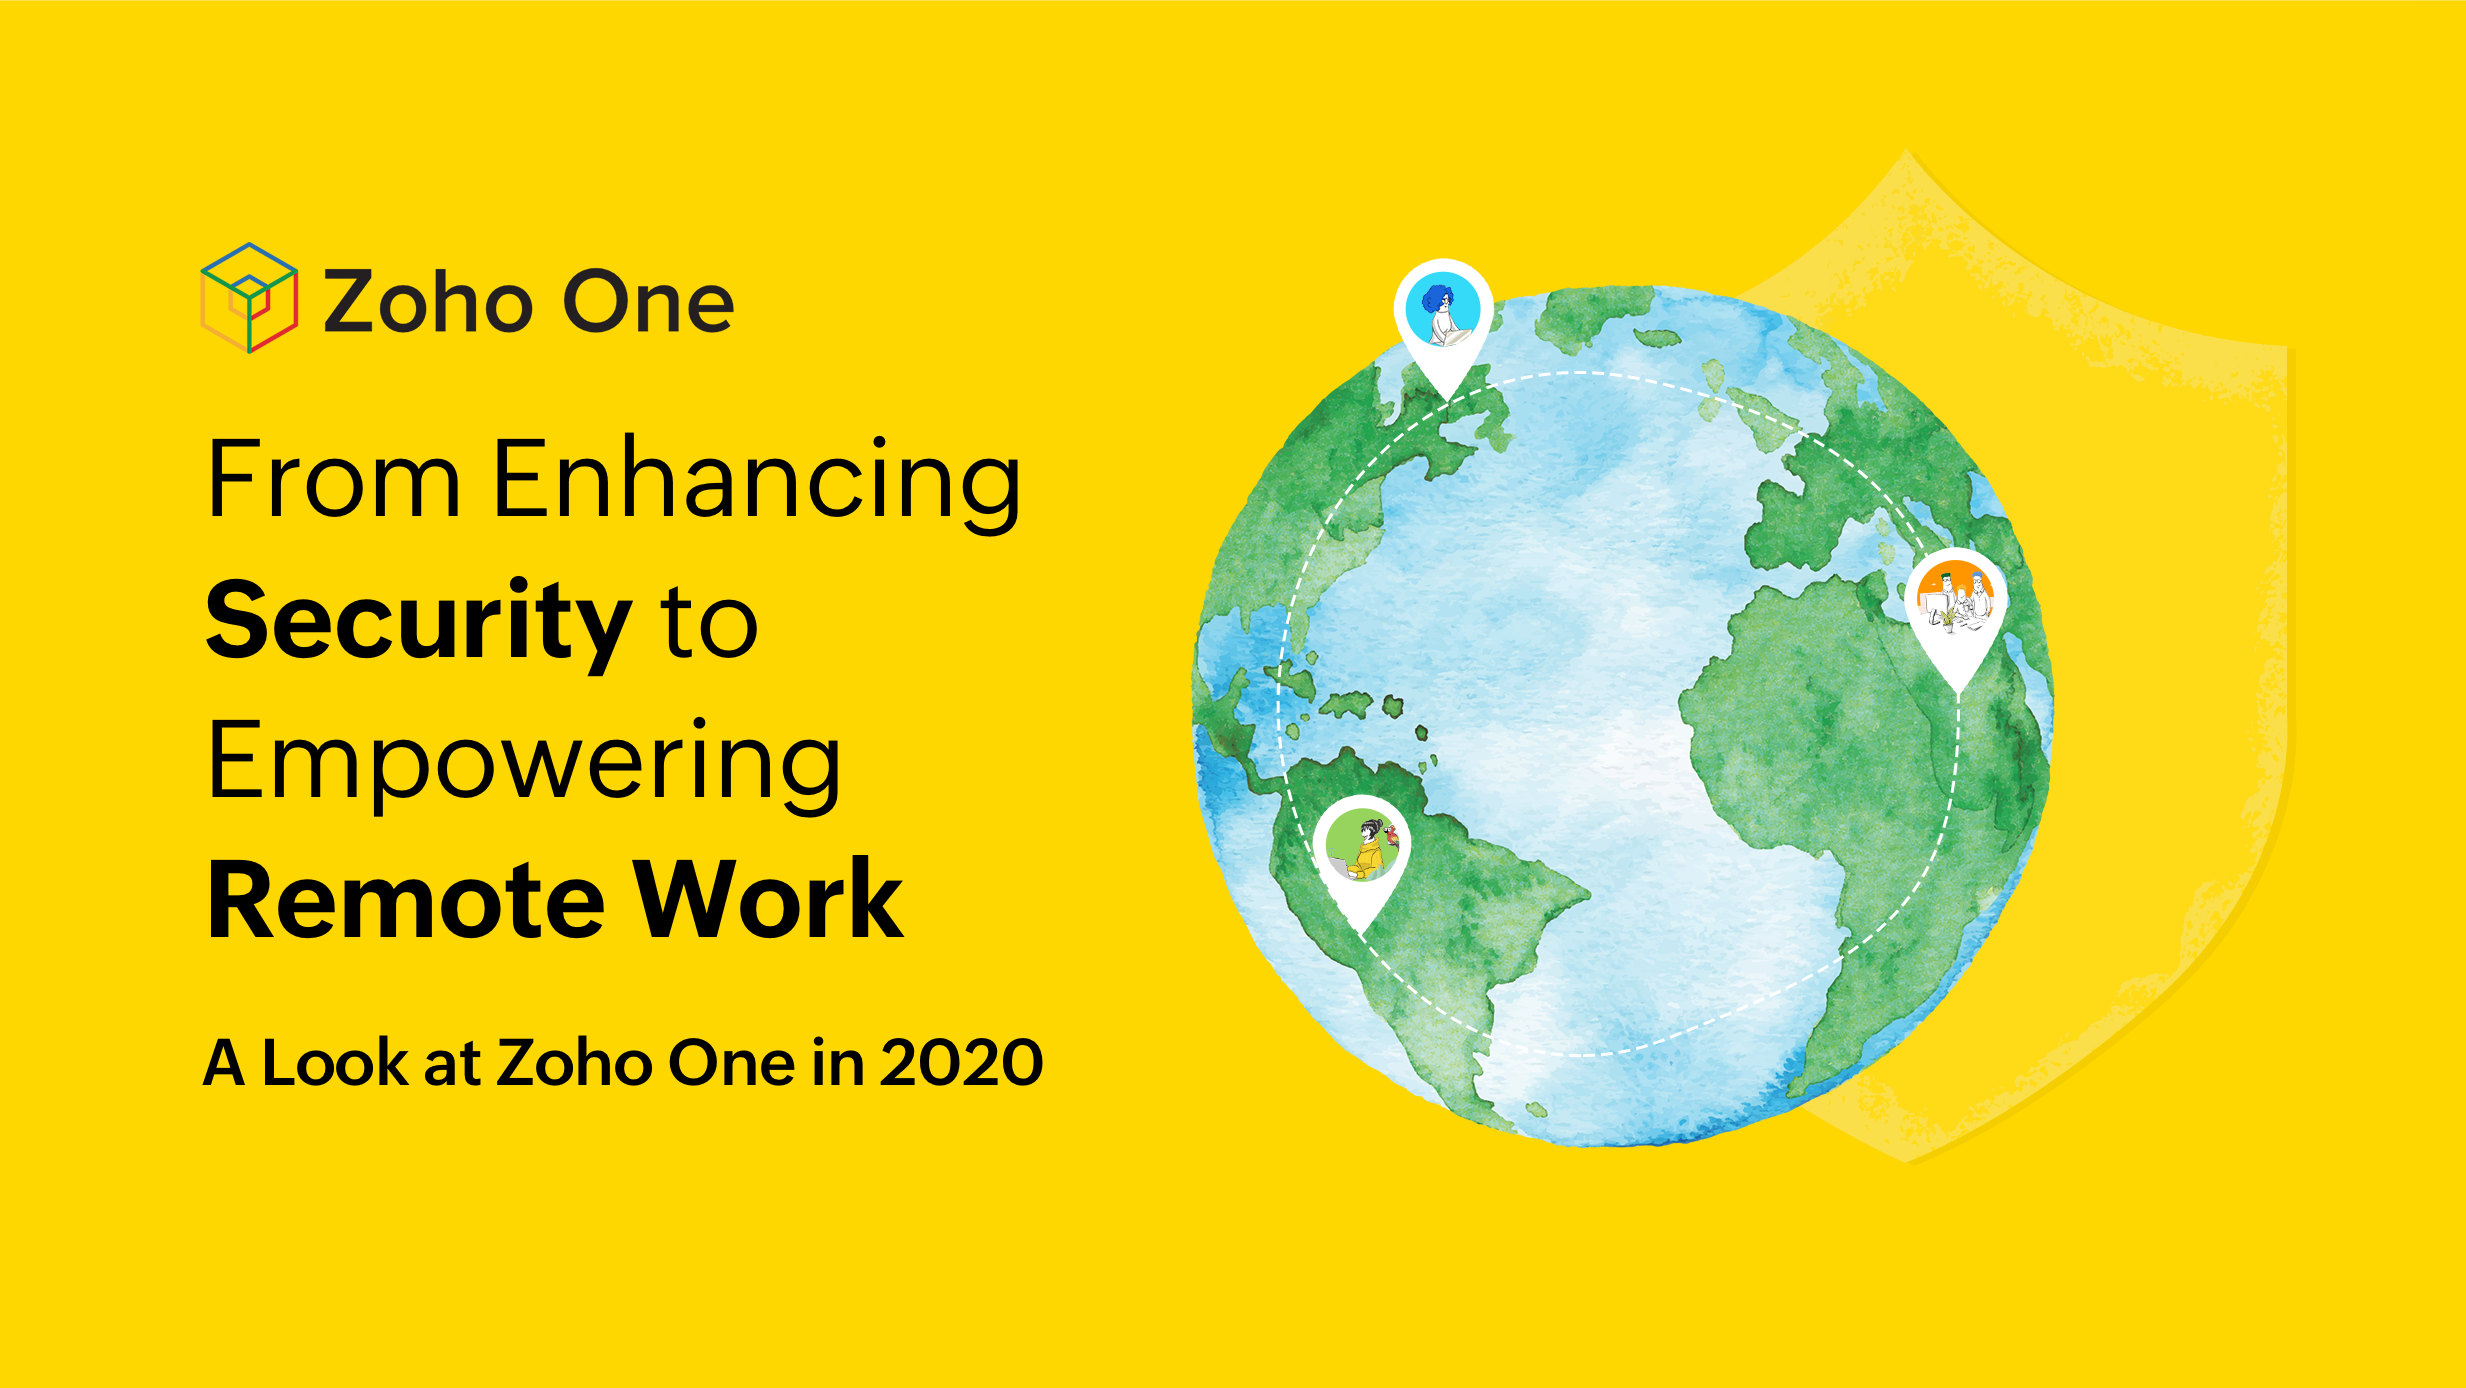 Zoho One Product Updates in 2020